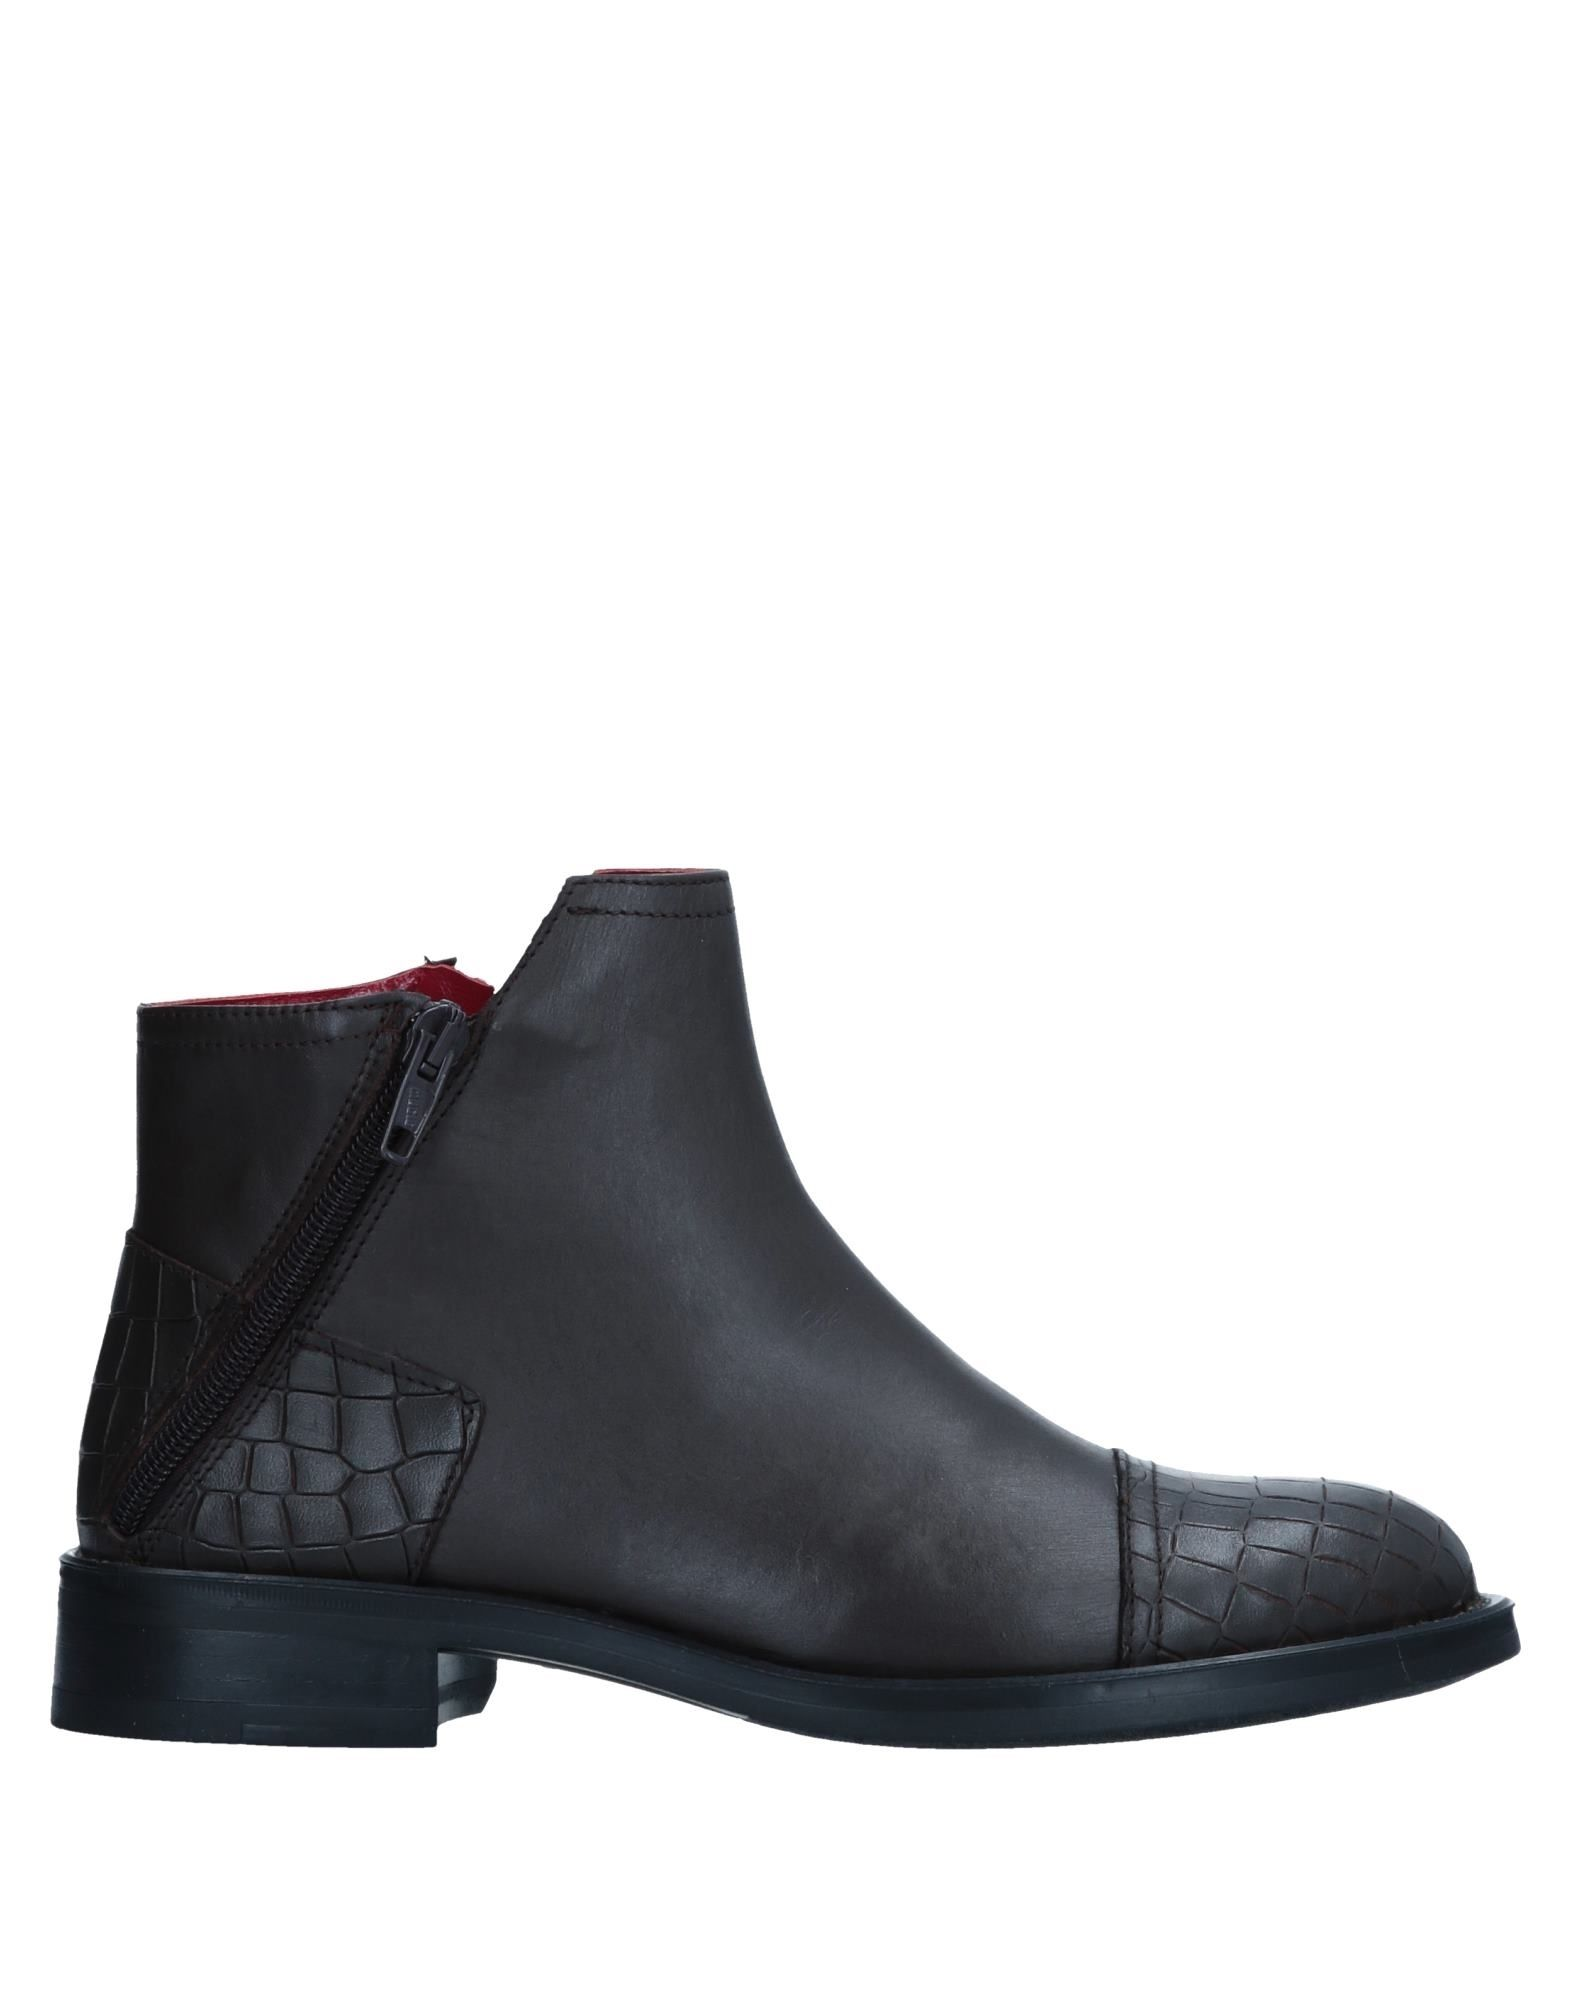 Gianfranco Lattanzi Ankle Boot Ankle - Women Gianfranco Lattanzi Ankle Boot Boots online on  Canada - 11228758PB af2a5f